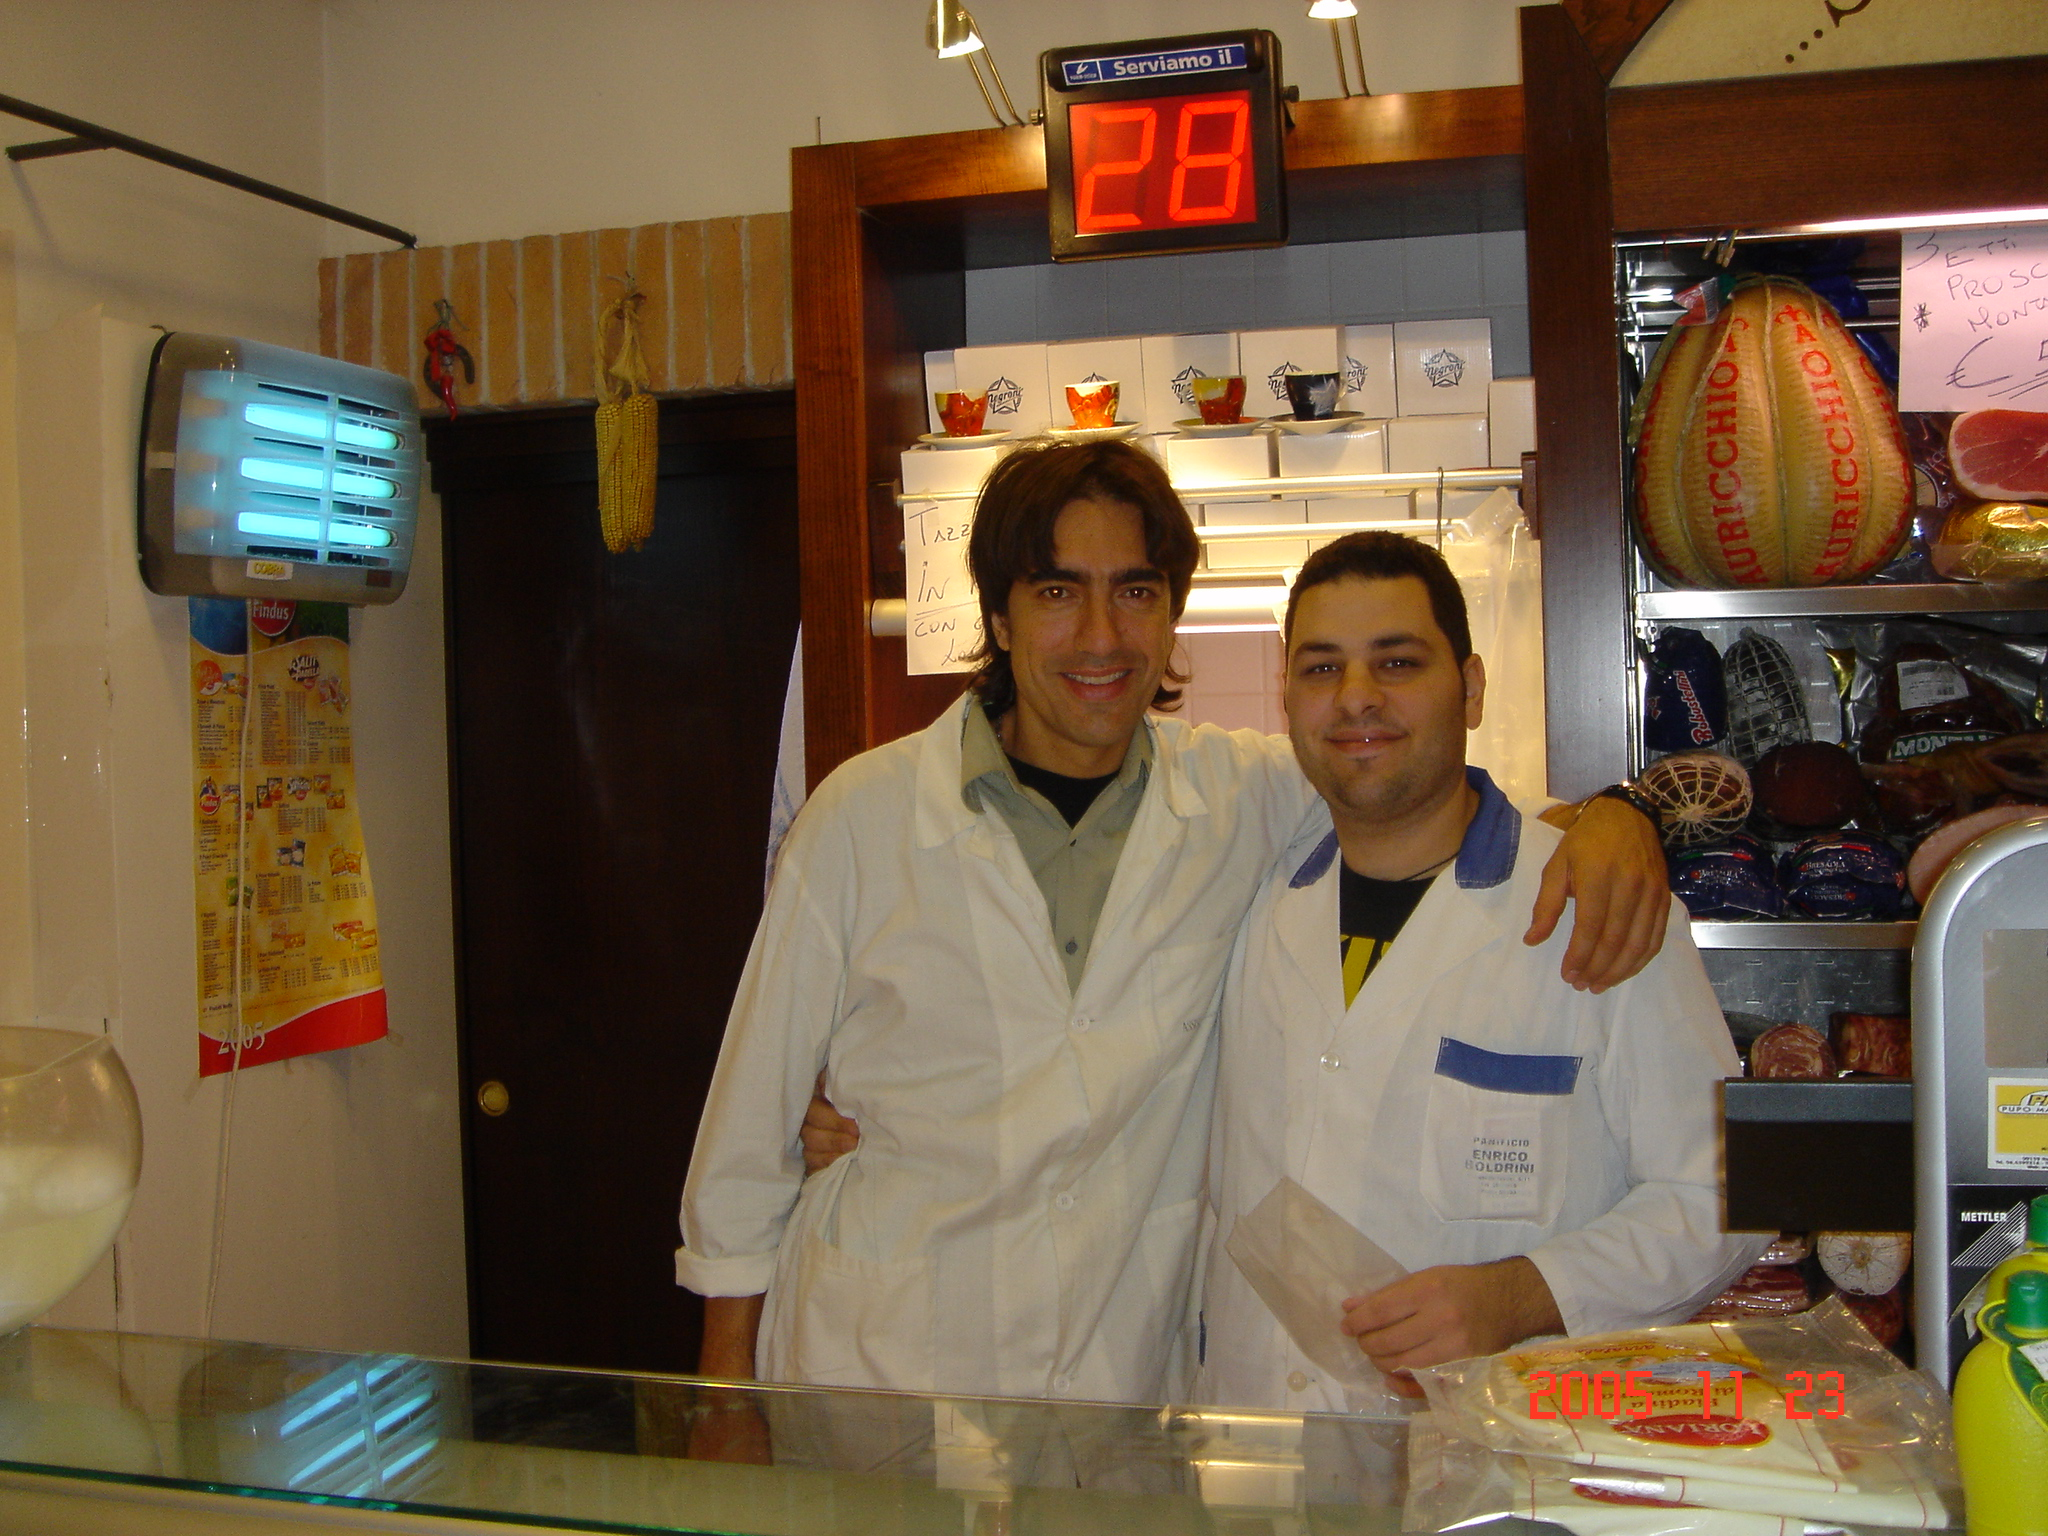 Roman and Guiseppe in Trastevere bakery